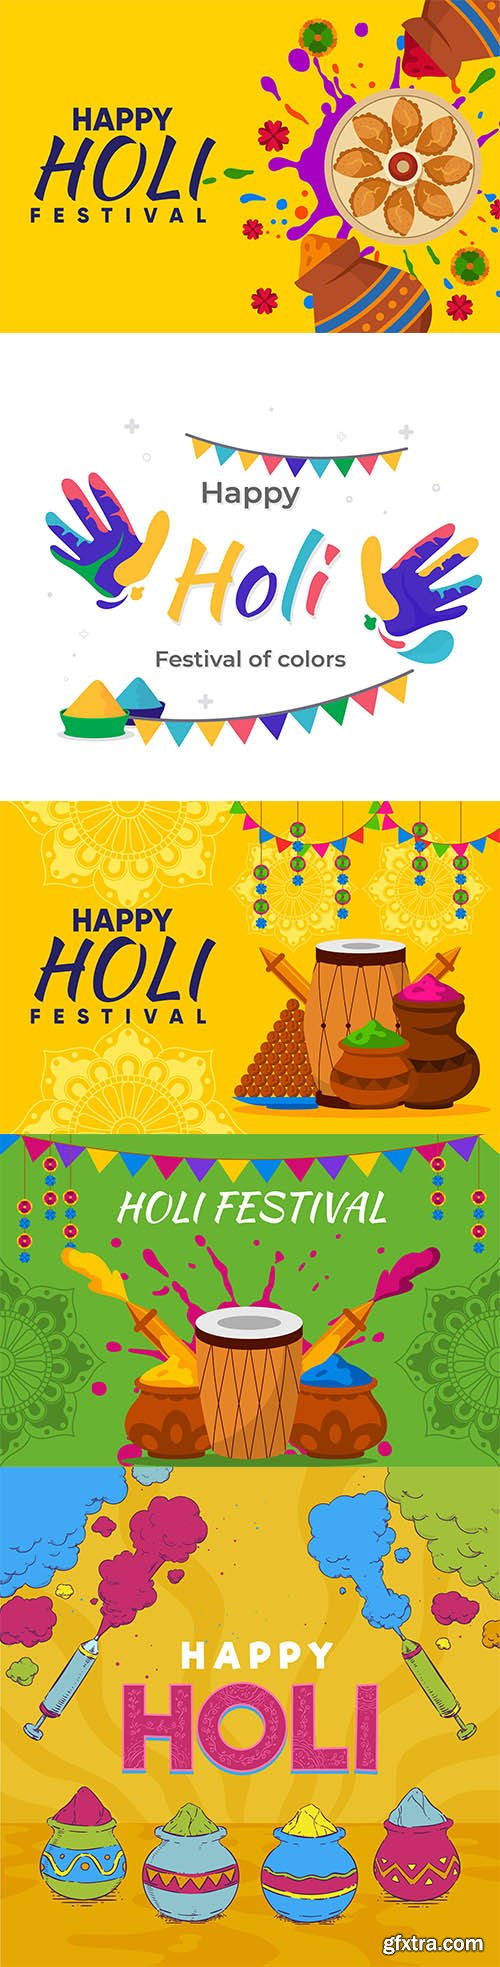 Hand-drawn holi festival illustration set